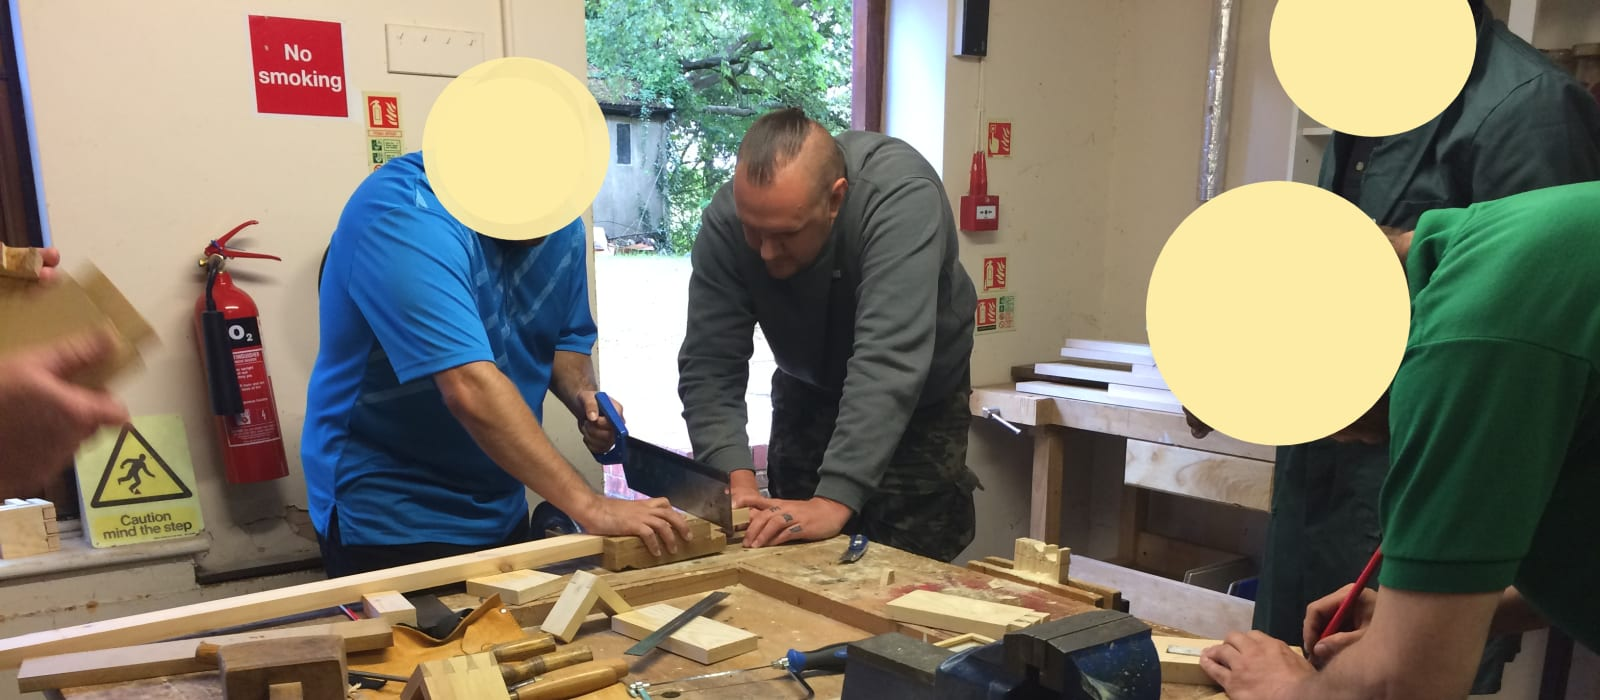 4 people and a tutor doing woodwork in a workshop